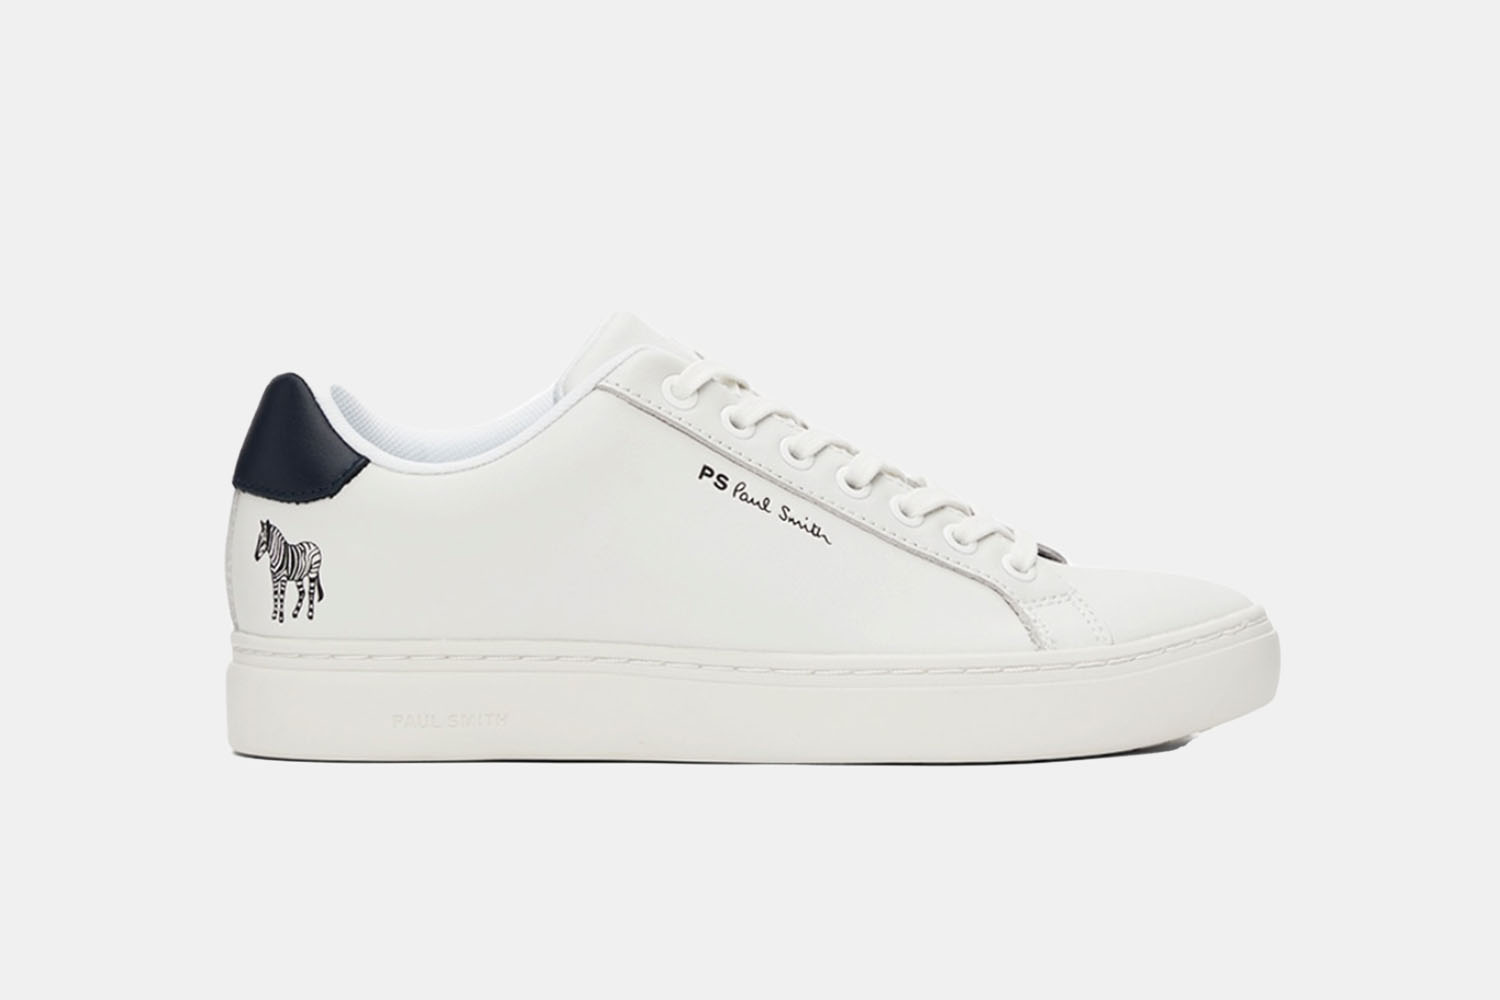 A white sneaker with blue accents and a zebra on the back right corner.